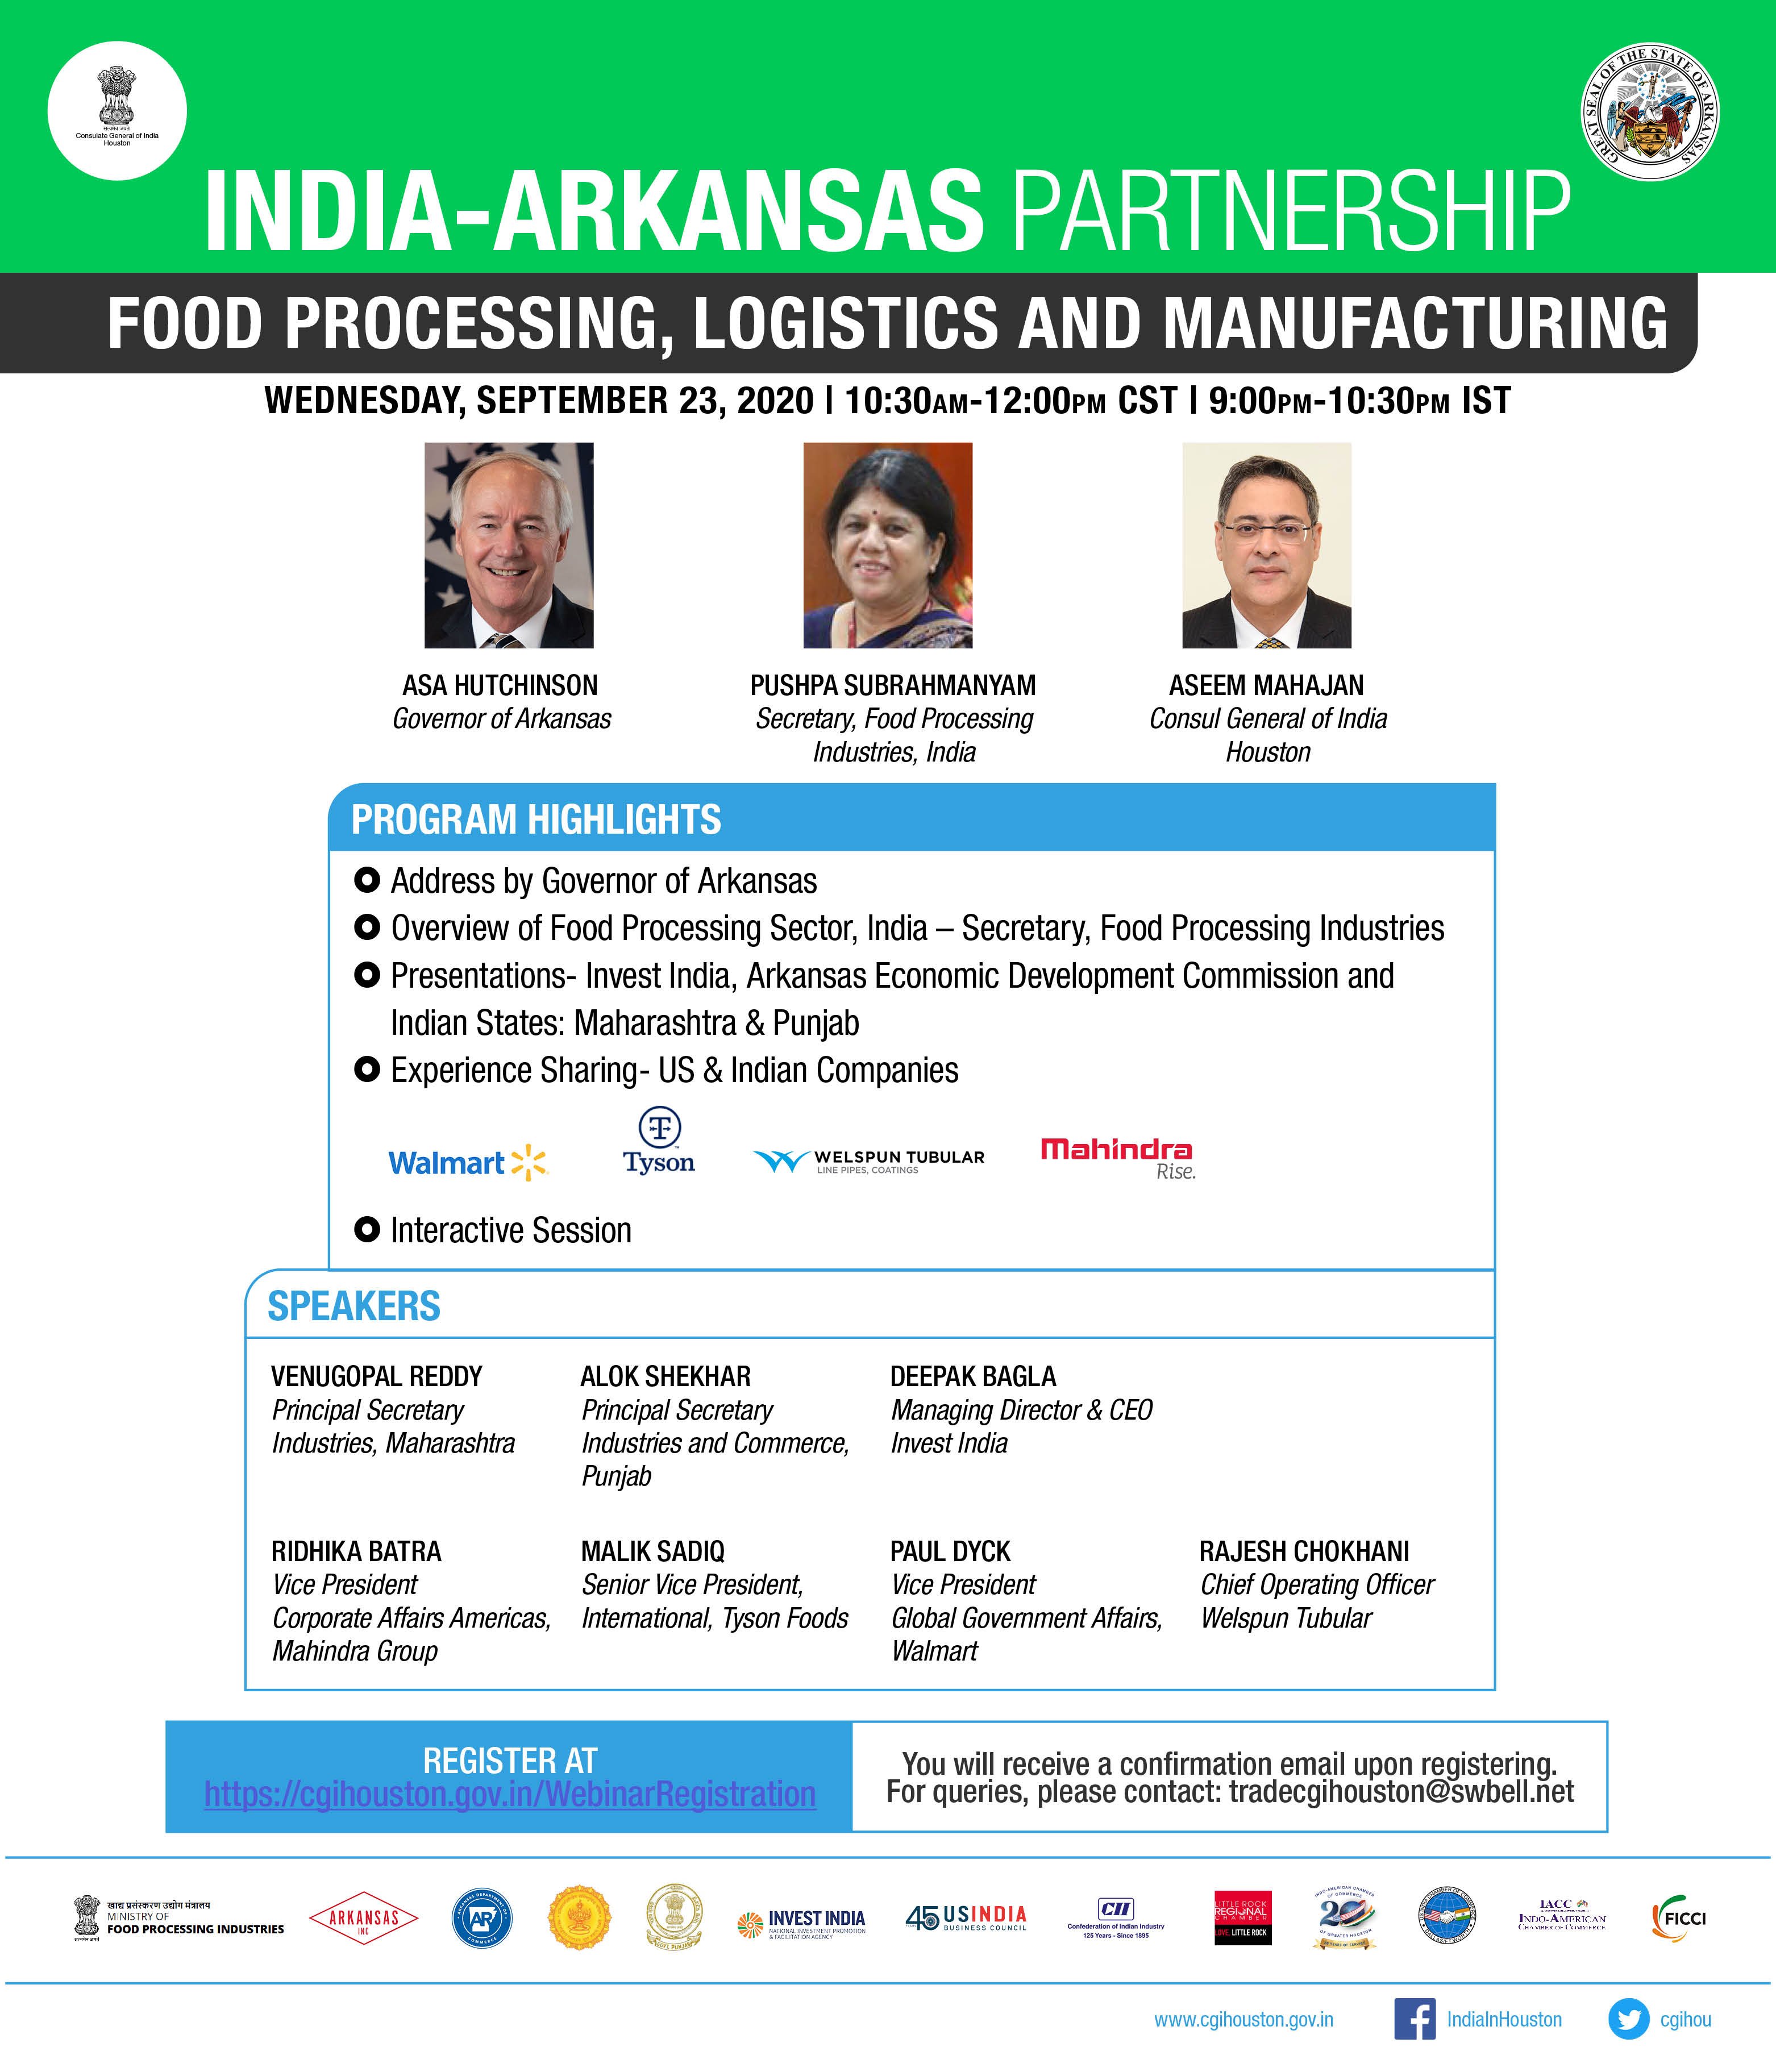 India Arkansas Partnership - Webinar on Food Processing, Logistics and Manufacturing